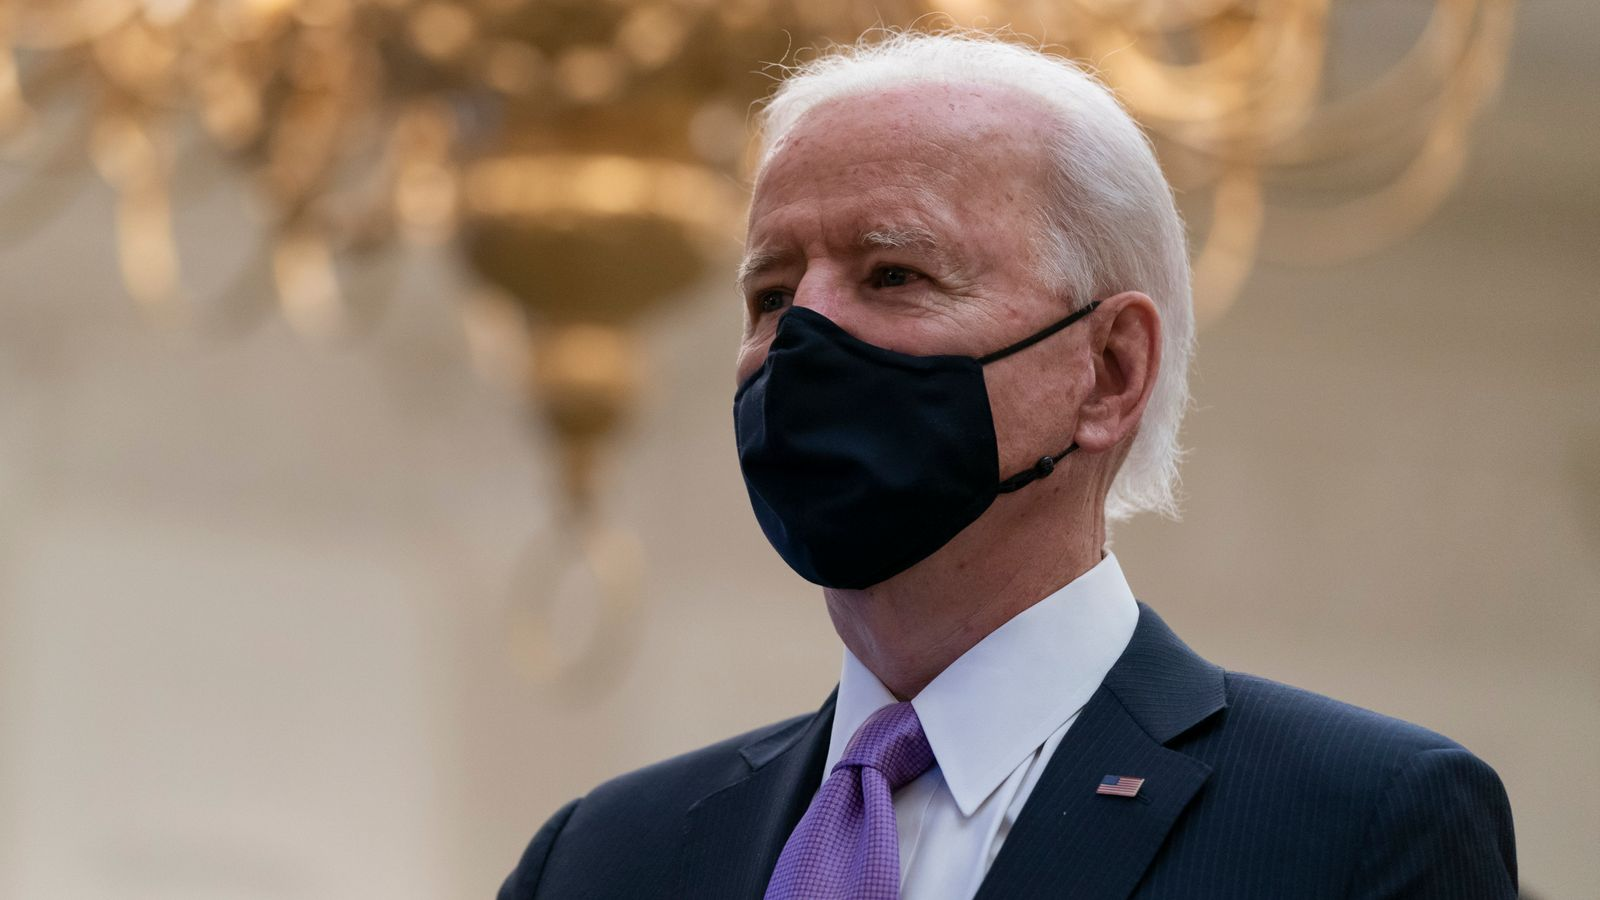 Biden says vaccine rollout has been a 'dismal failure' and urges Americans to wear a mask for 99 days